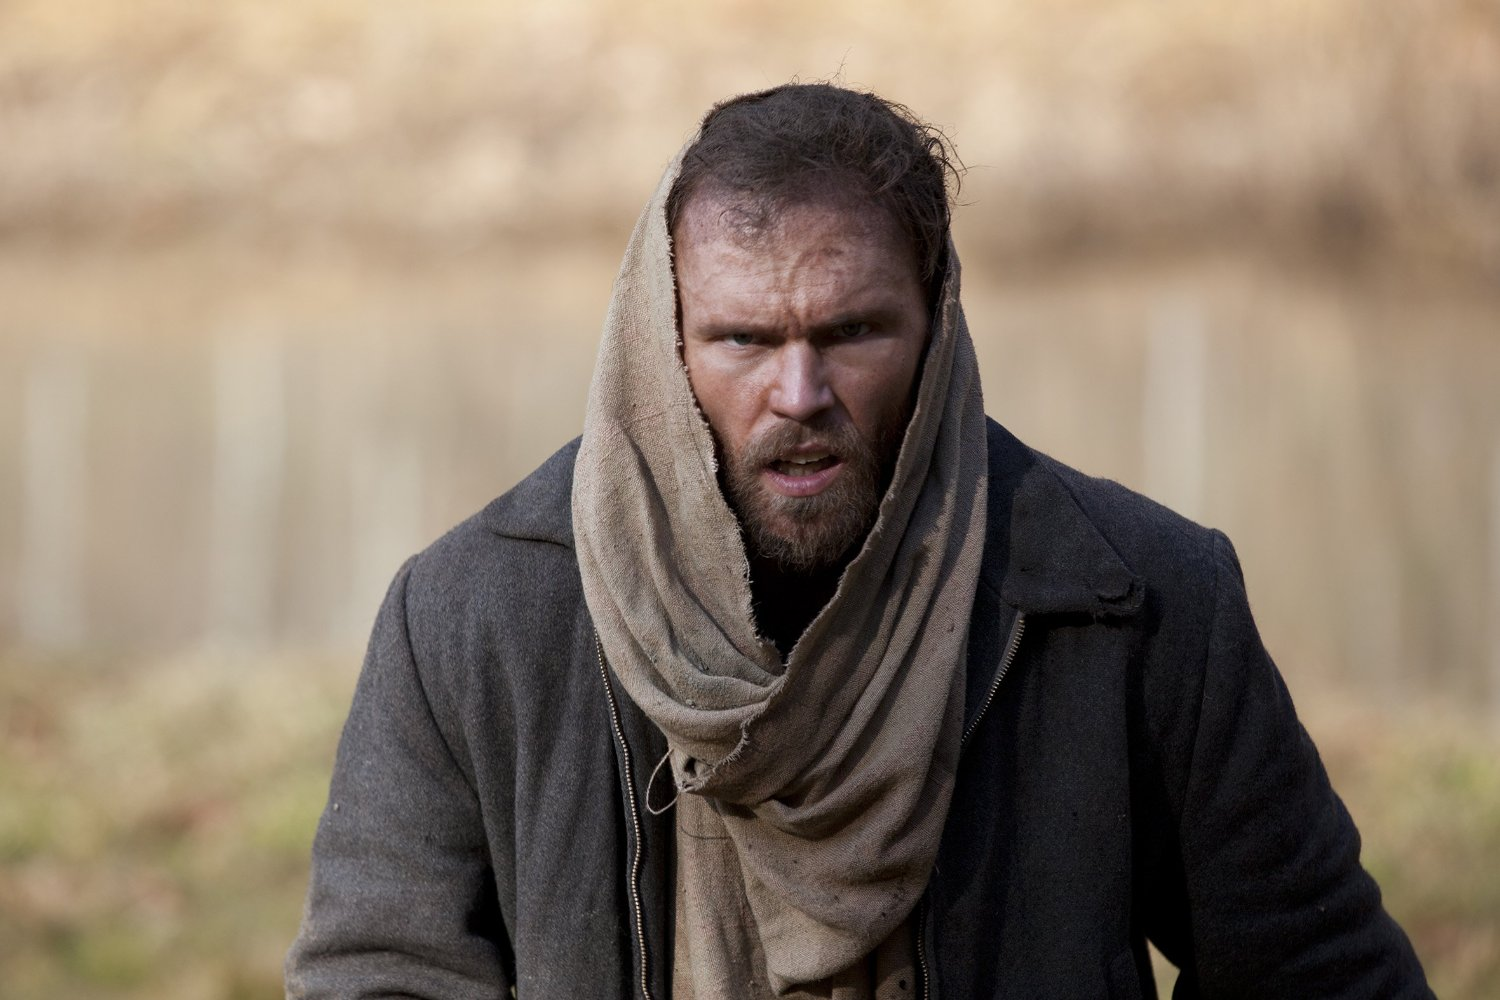 Scott Haze as serial killer Lester Ballard in Child of God (2013)